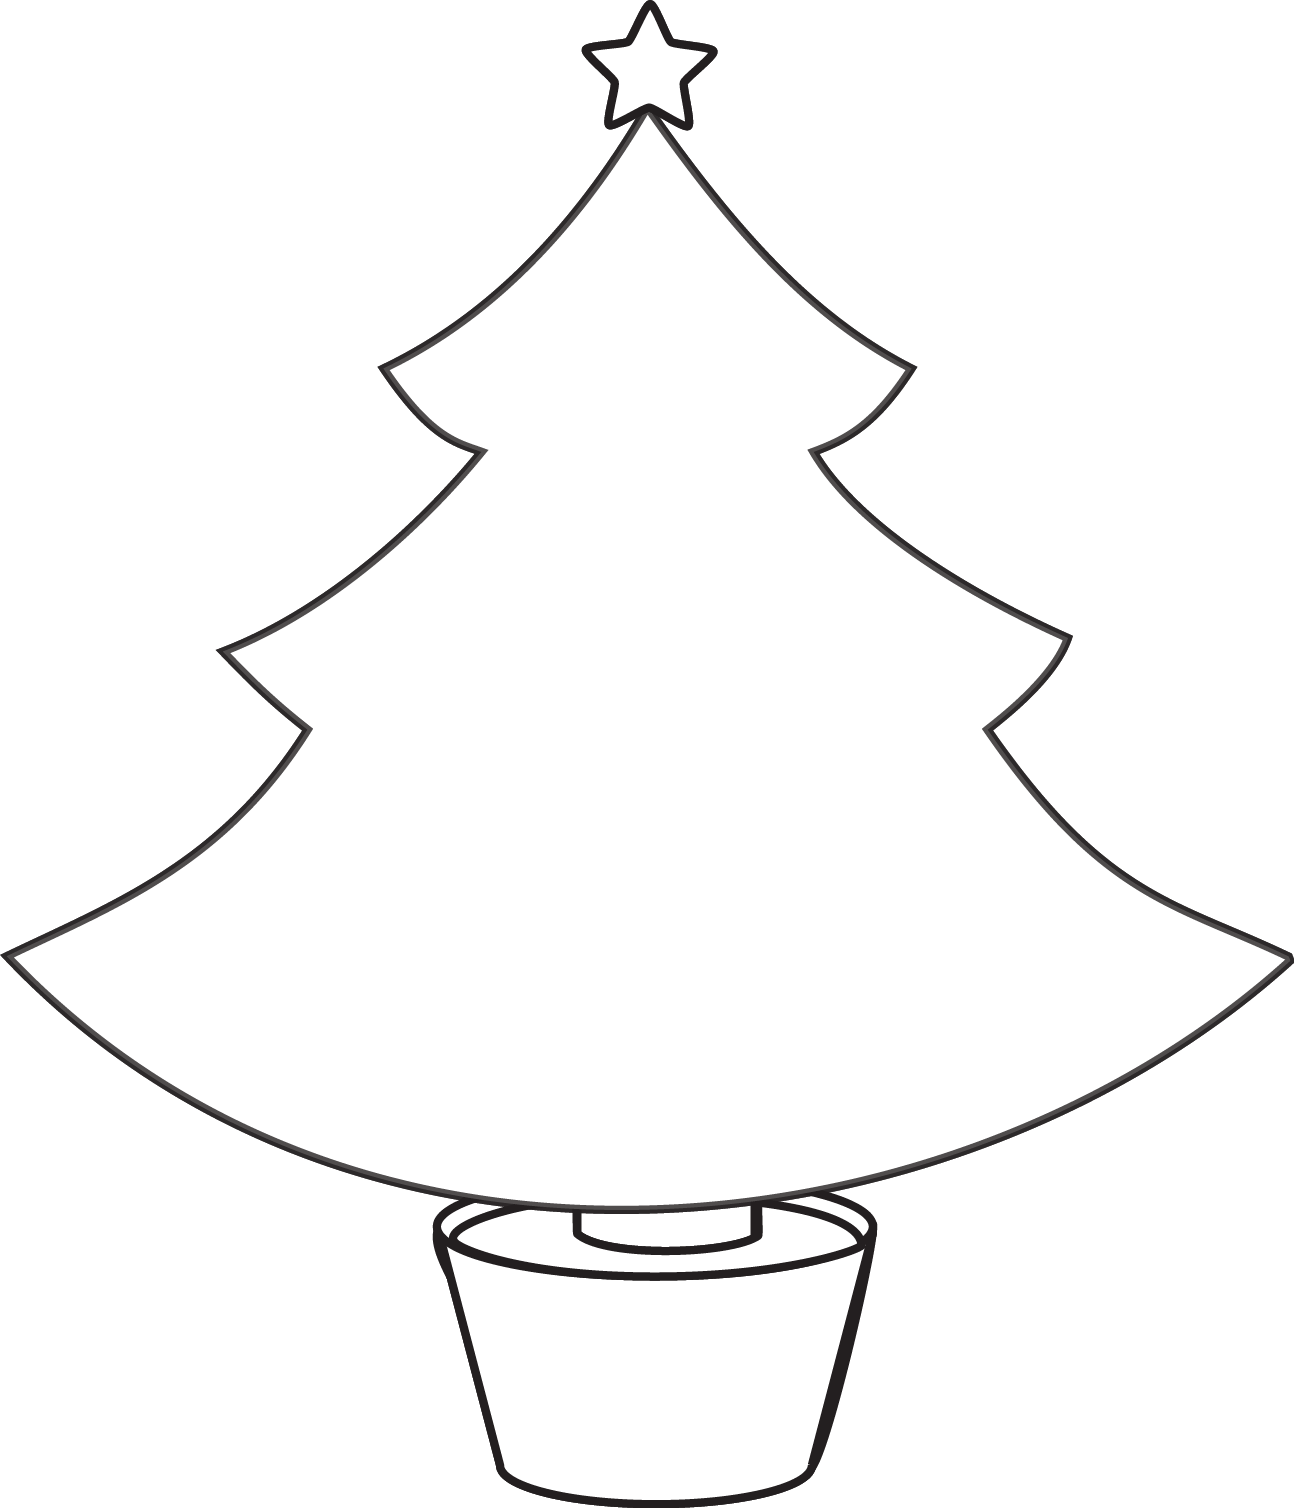 Christmas Ornament Drawing At Getdrawings Free For Personal